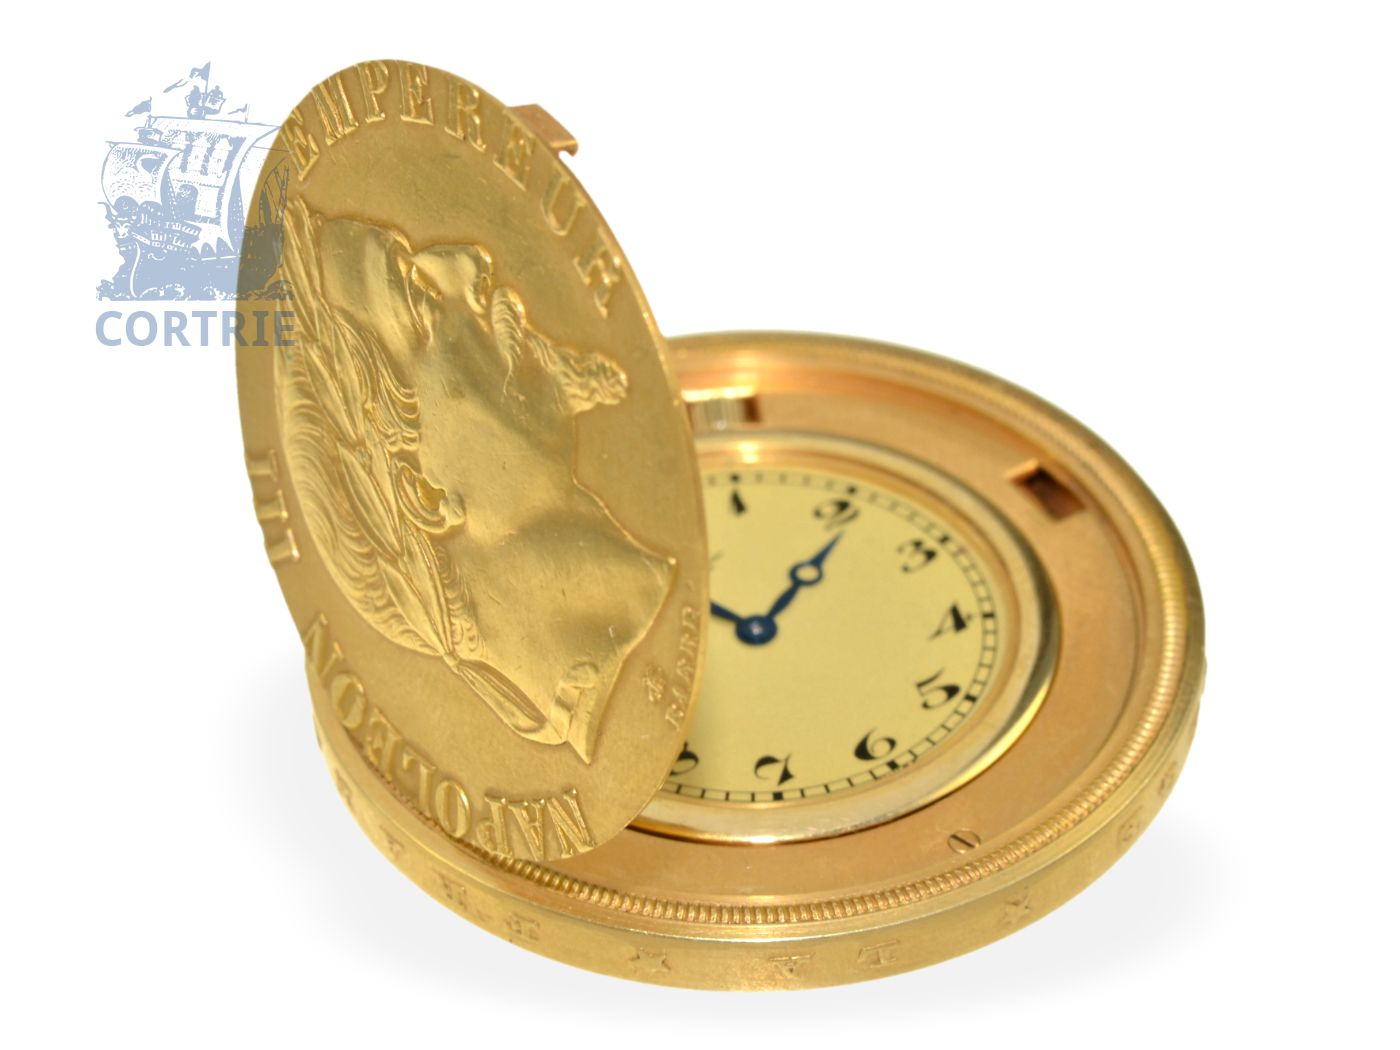 Pocket watch/dress watch: extremely rare coin watch with coin case Napoleon III 100Fr., Paul Piguet ca. 1960-